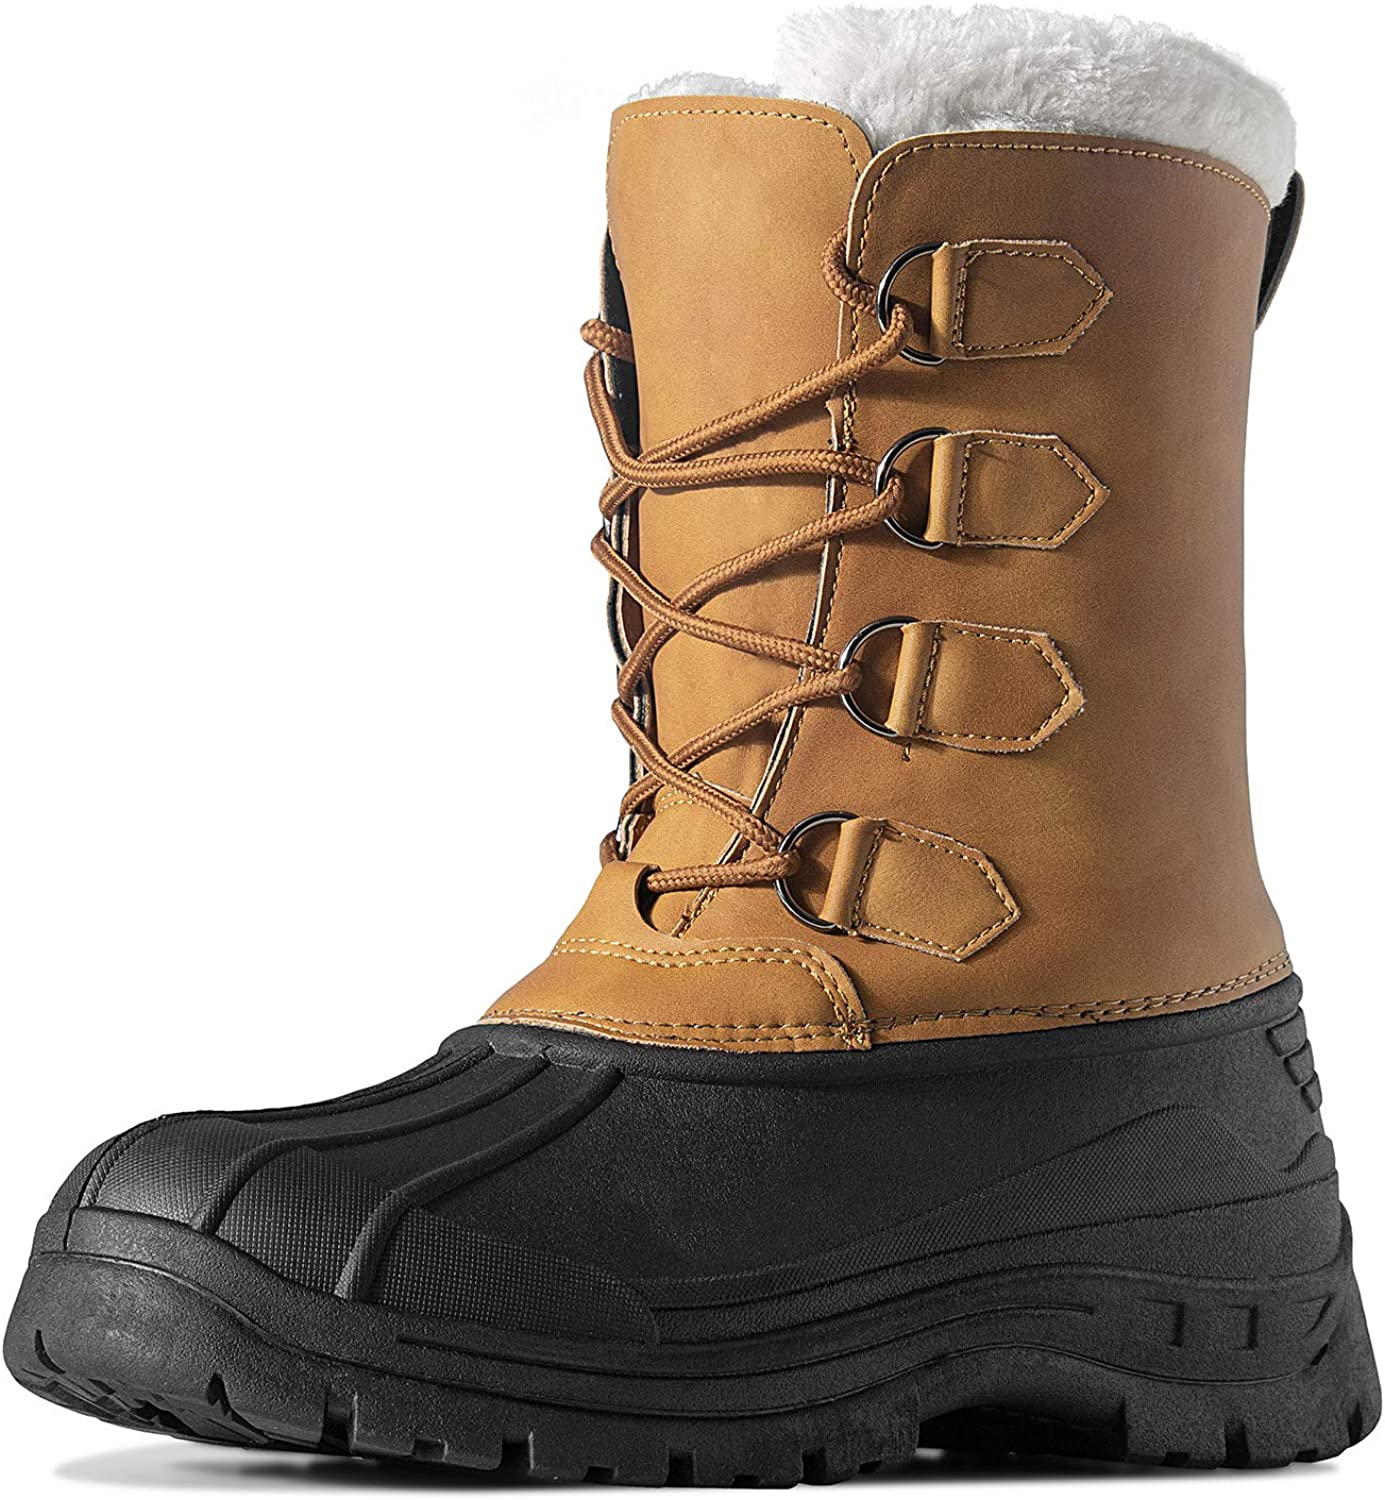 Amazon.com   HAVEDREAM Men's Winter Snow Boots, Outdoor Waterproof  Anti-Slip Warm Fur Winter Boots Lace-up Shoes for Men   Snow Boots